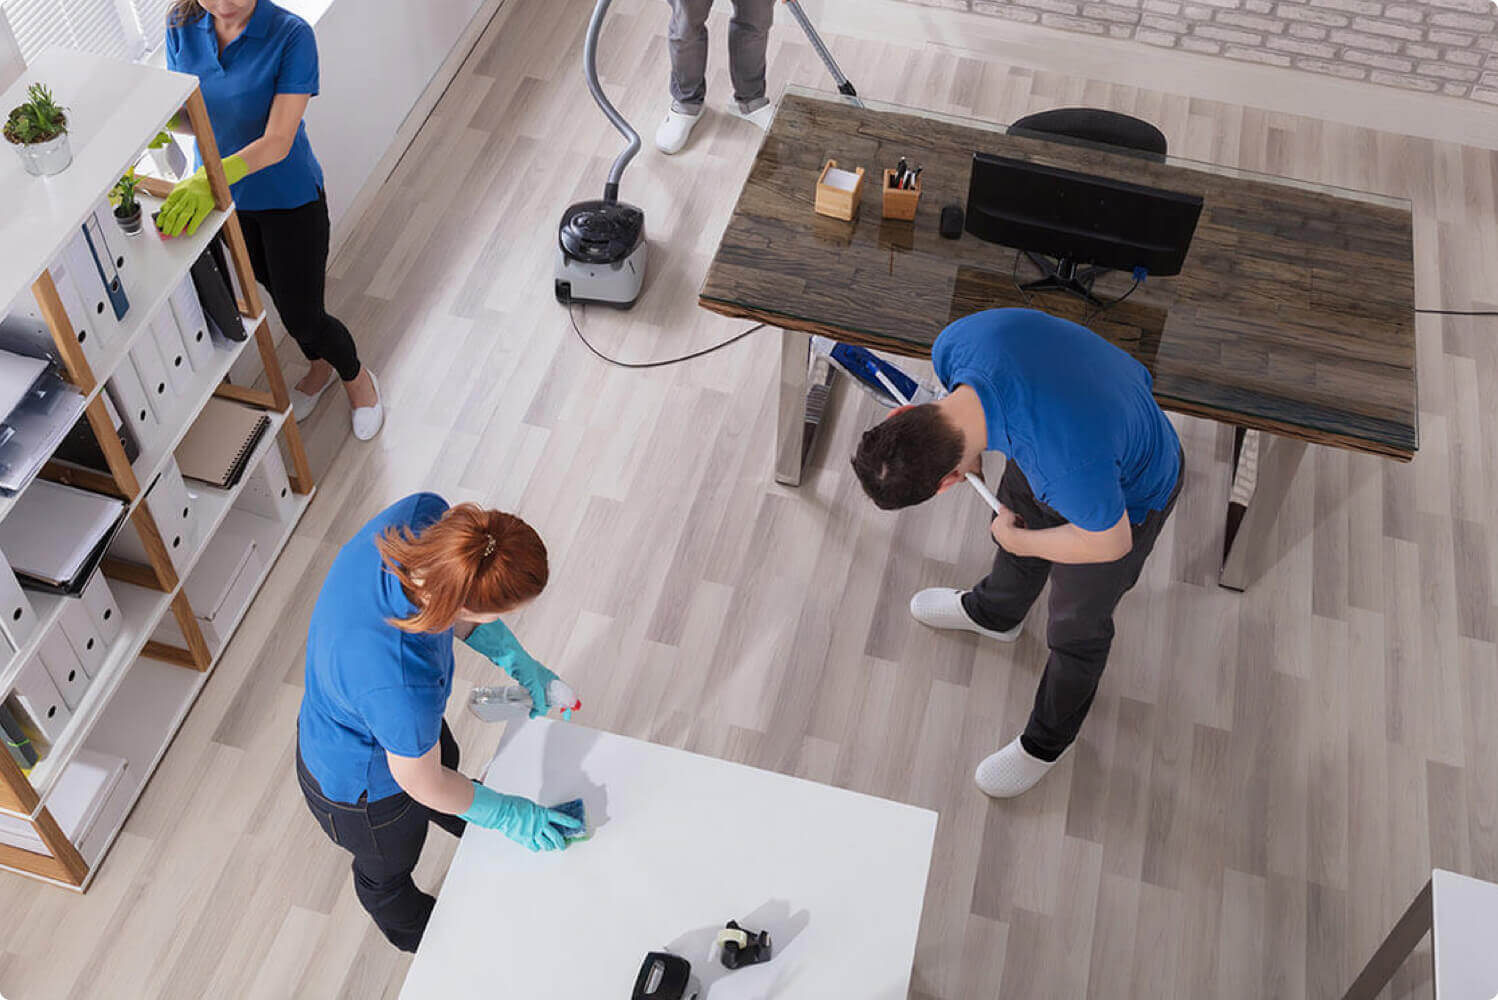 BCS-Cleaning-Services-Join-Our-Team-Img